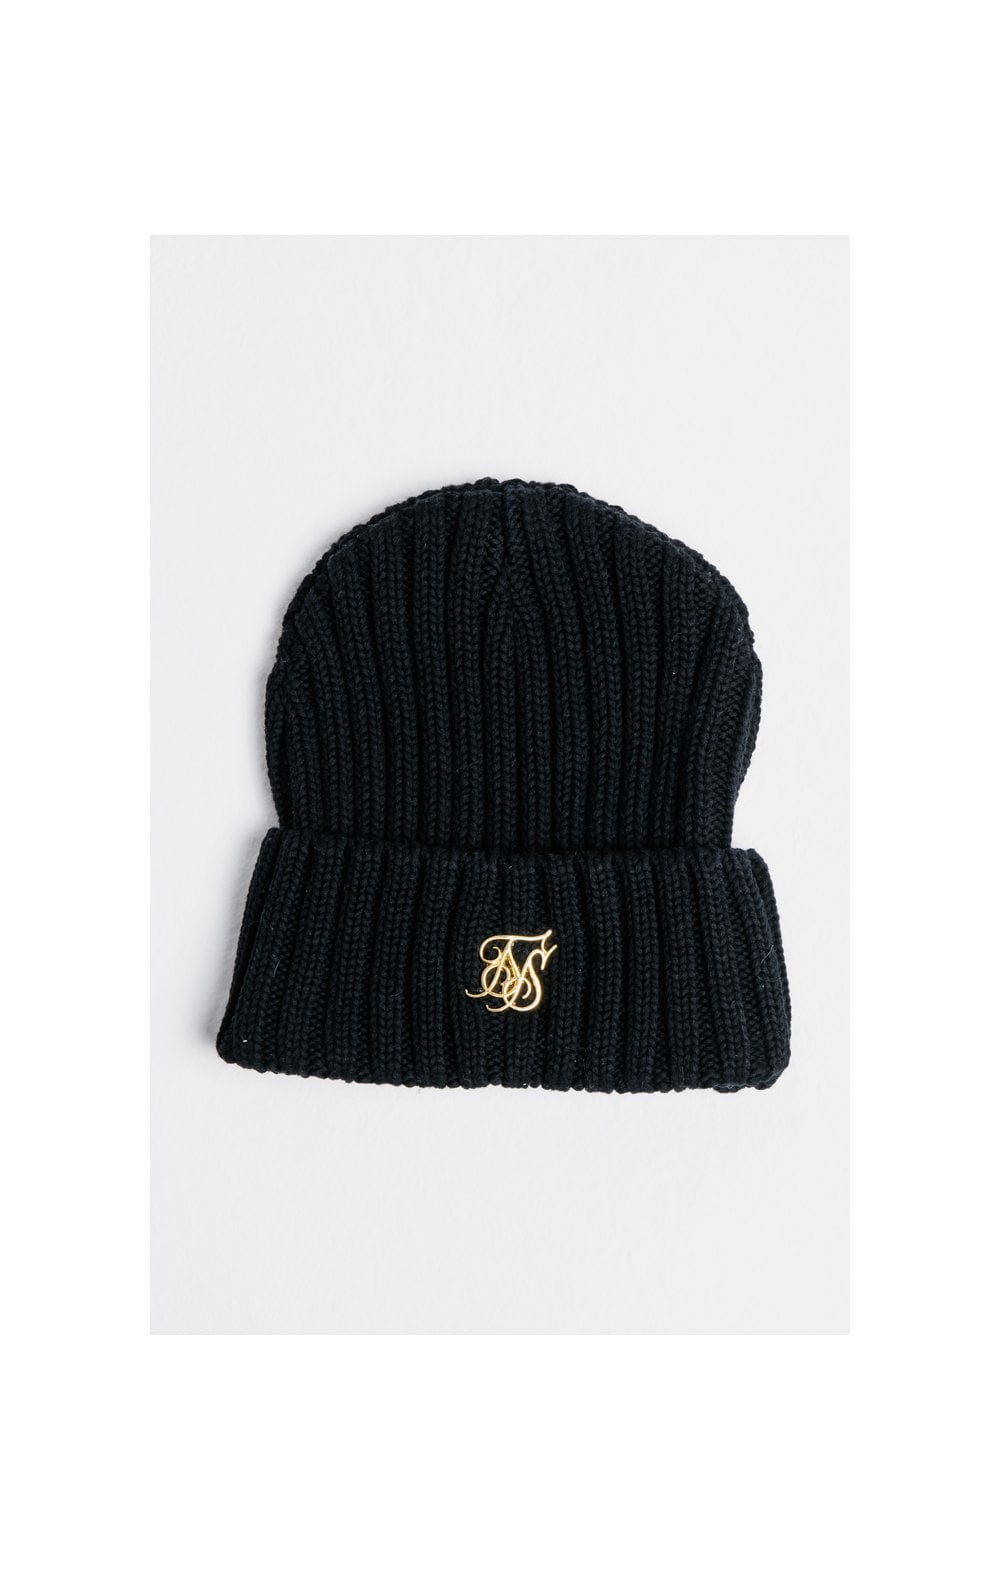 SikSilk Rib Cuff Knit Beanie - Black & Gold